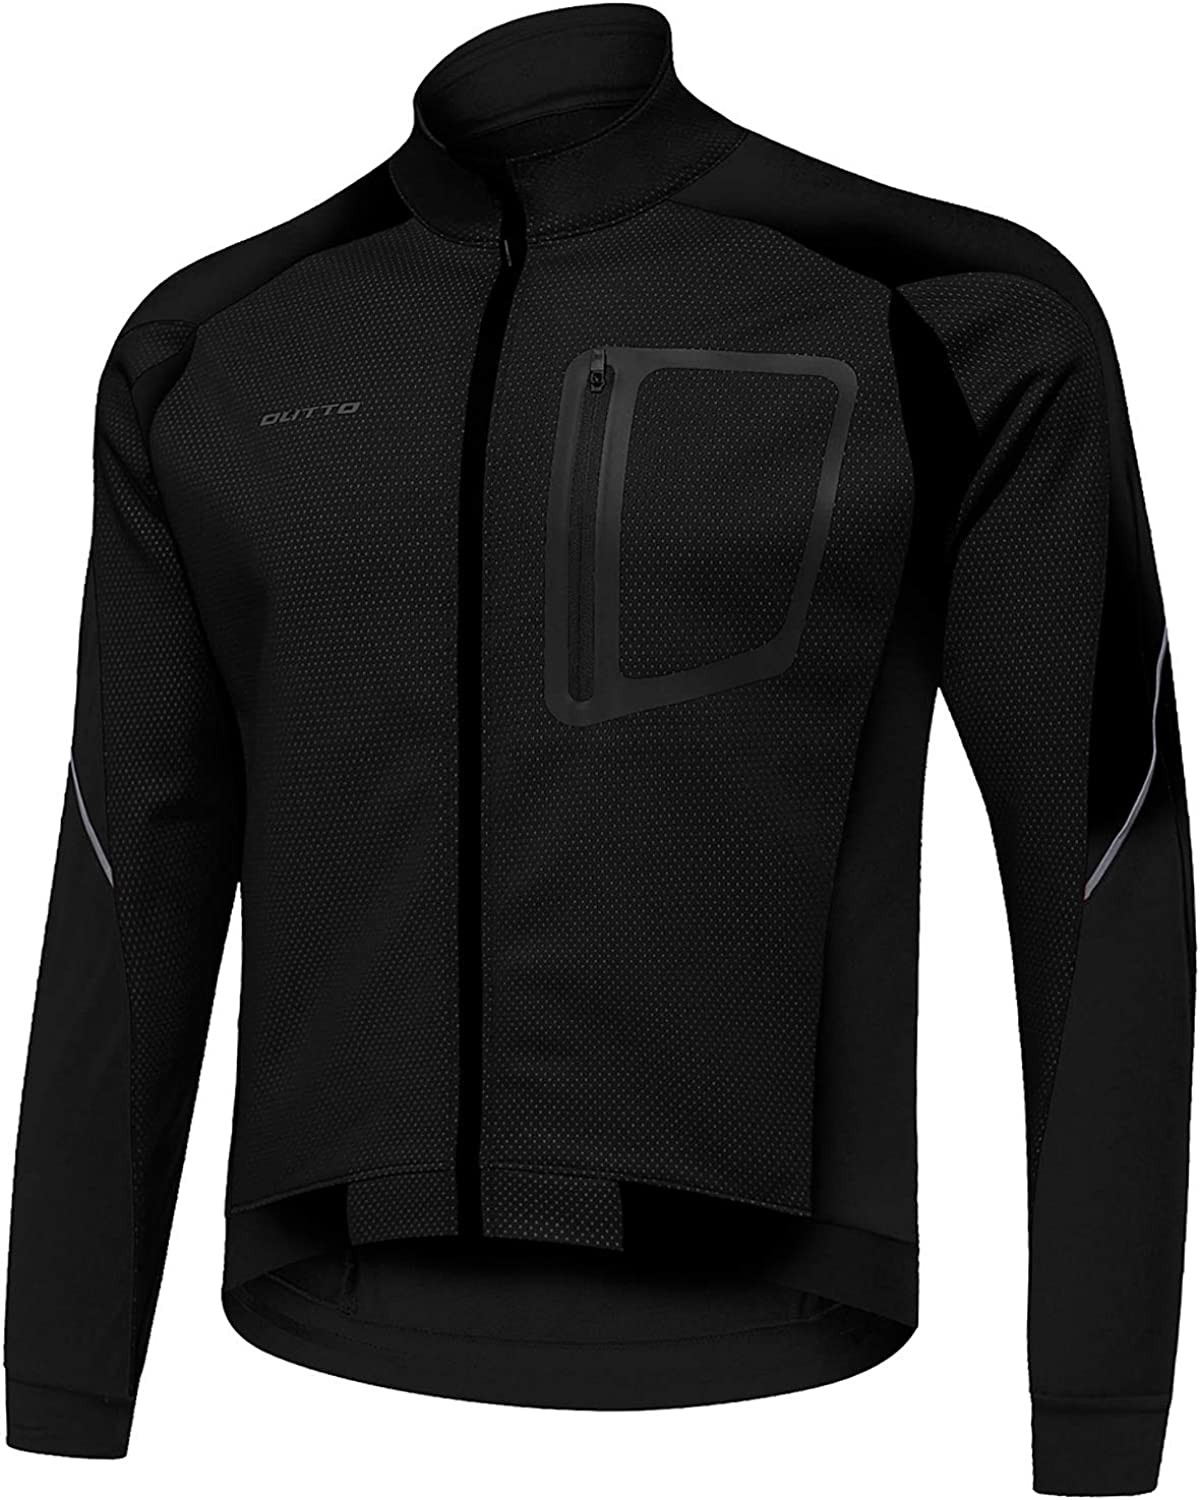 OUTTO Mens Winter Cycling Jacket Reflective Water Resistant